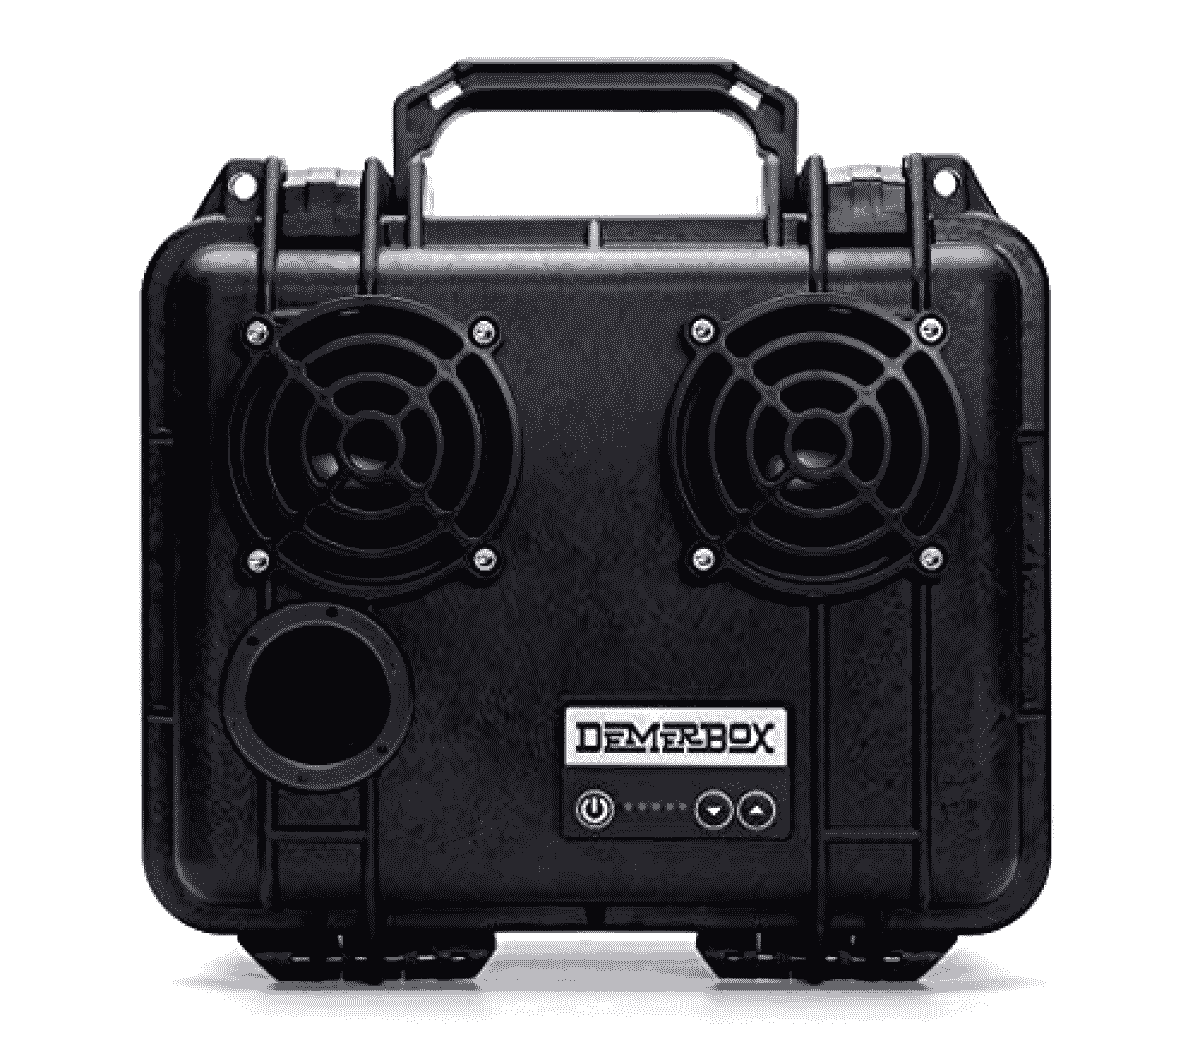 DemerBox Wireless Waterproof Speaker